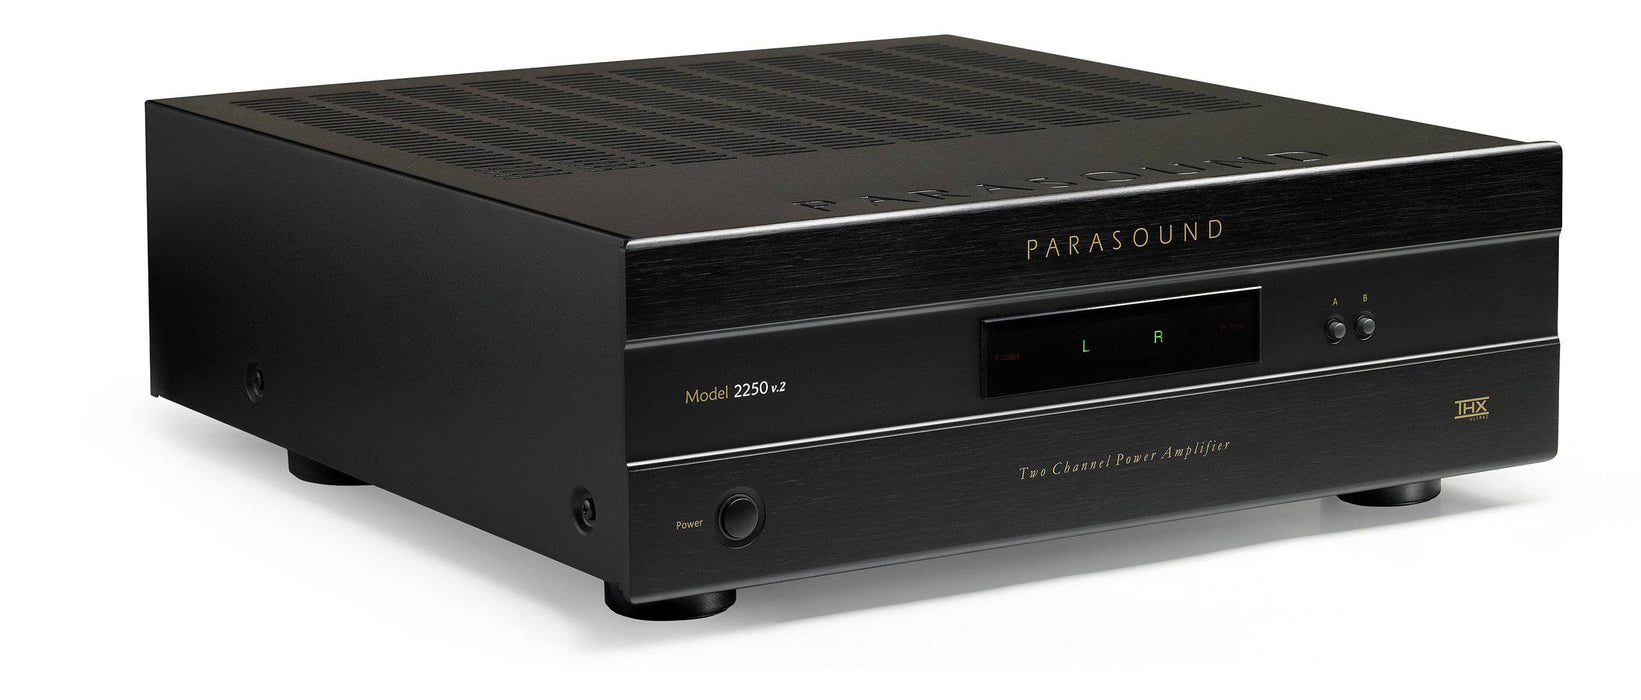 Parasound NewClassic 2250 v.2 - 2 Channel Power Amplifier - The Audio Company